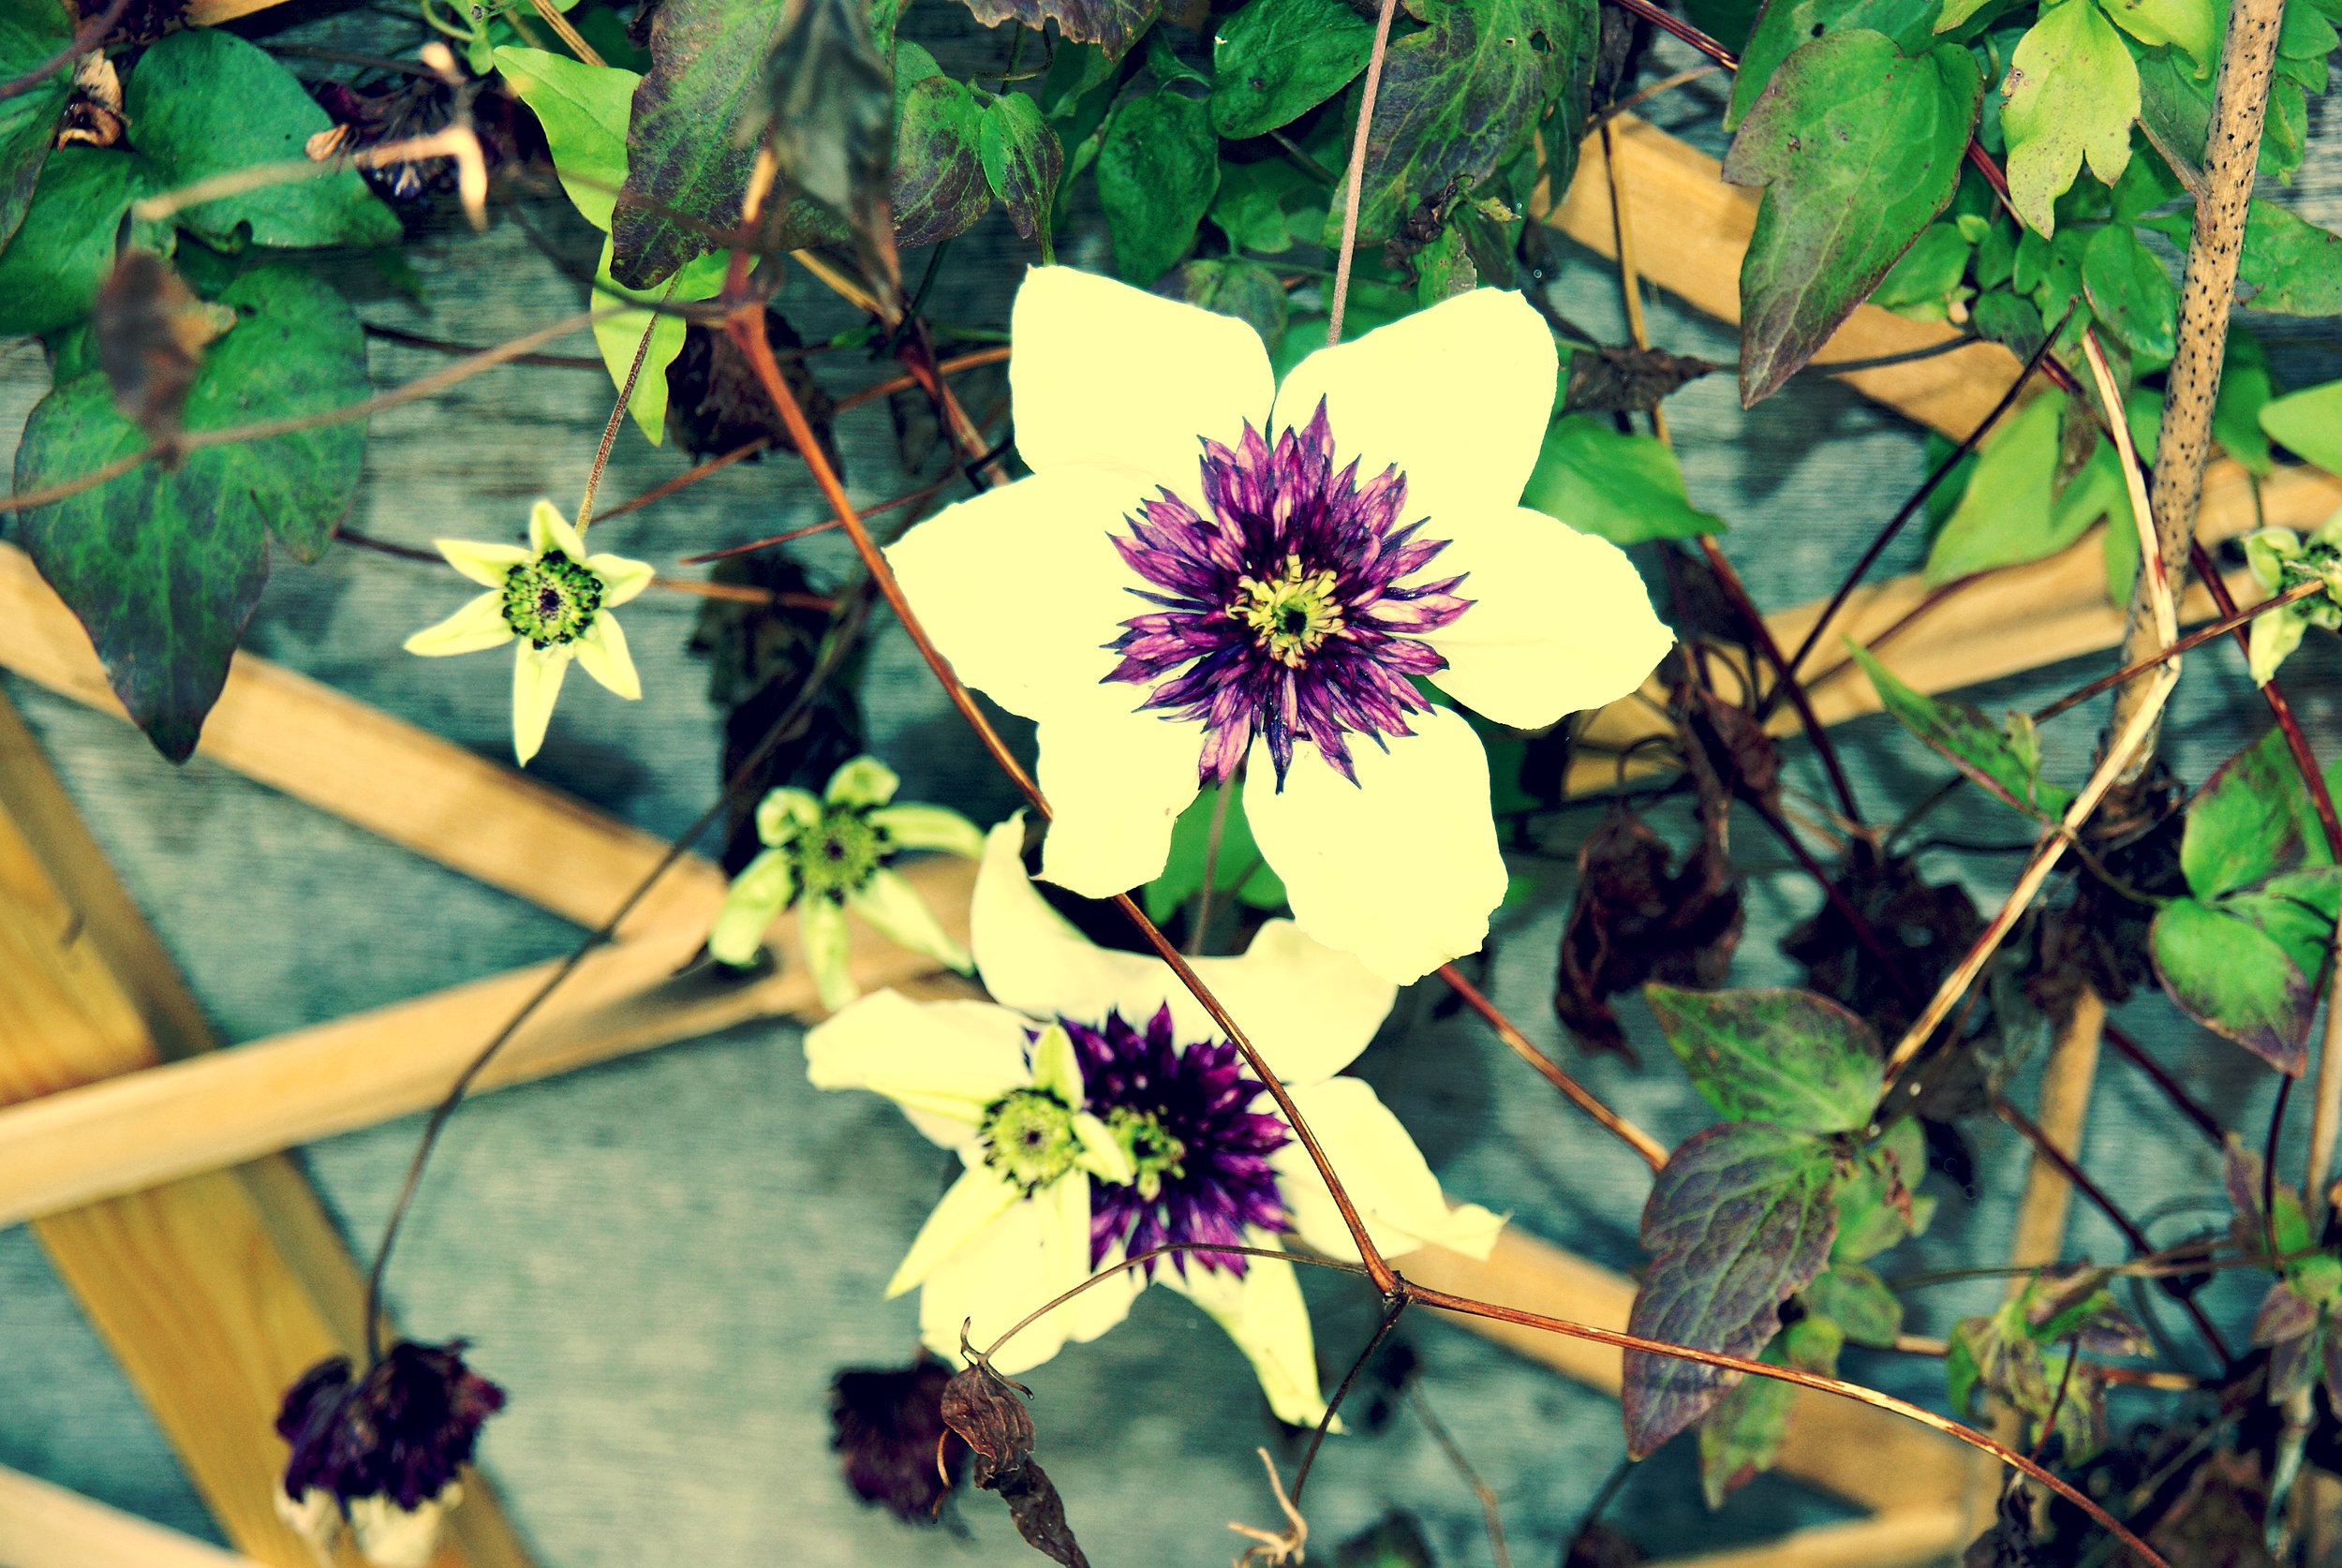 2 white and purple garden flowers 2.jpg